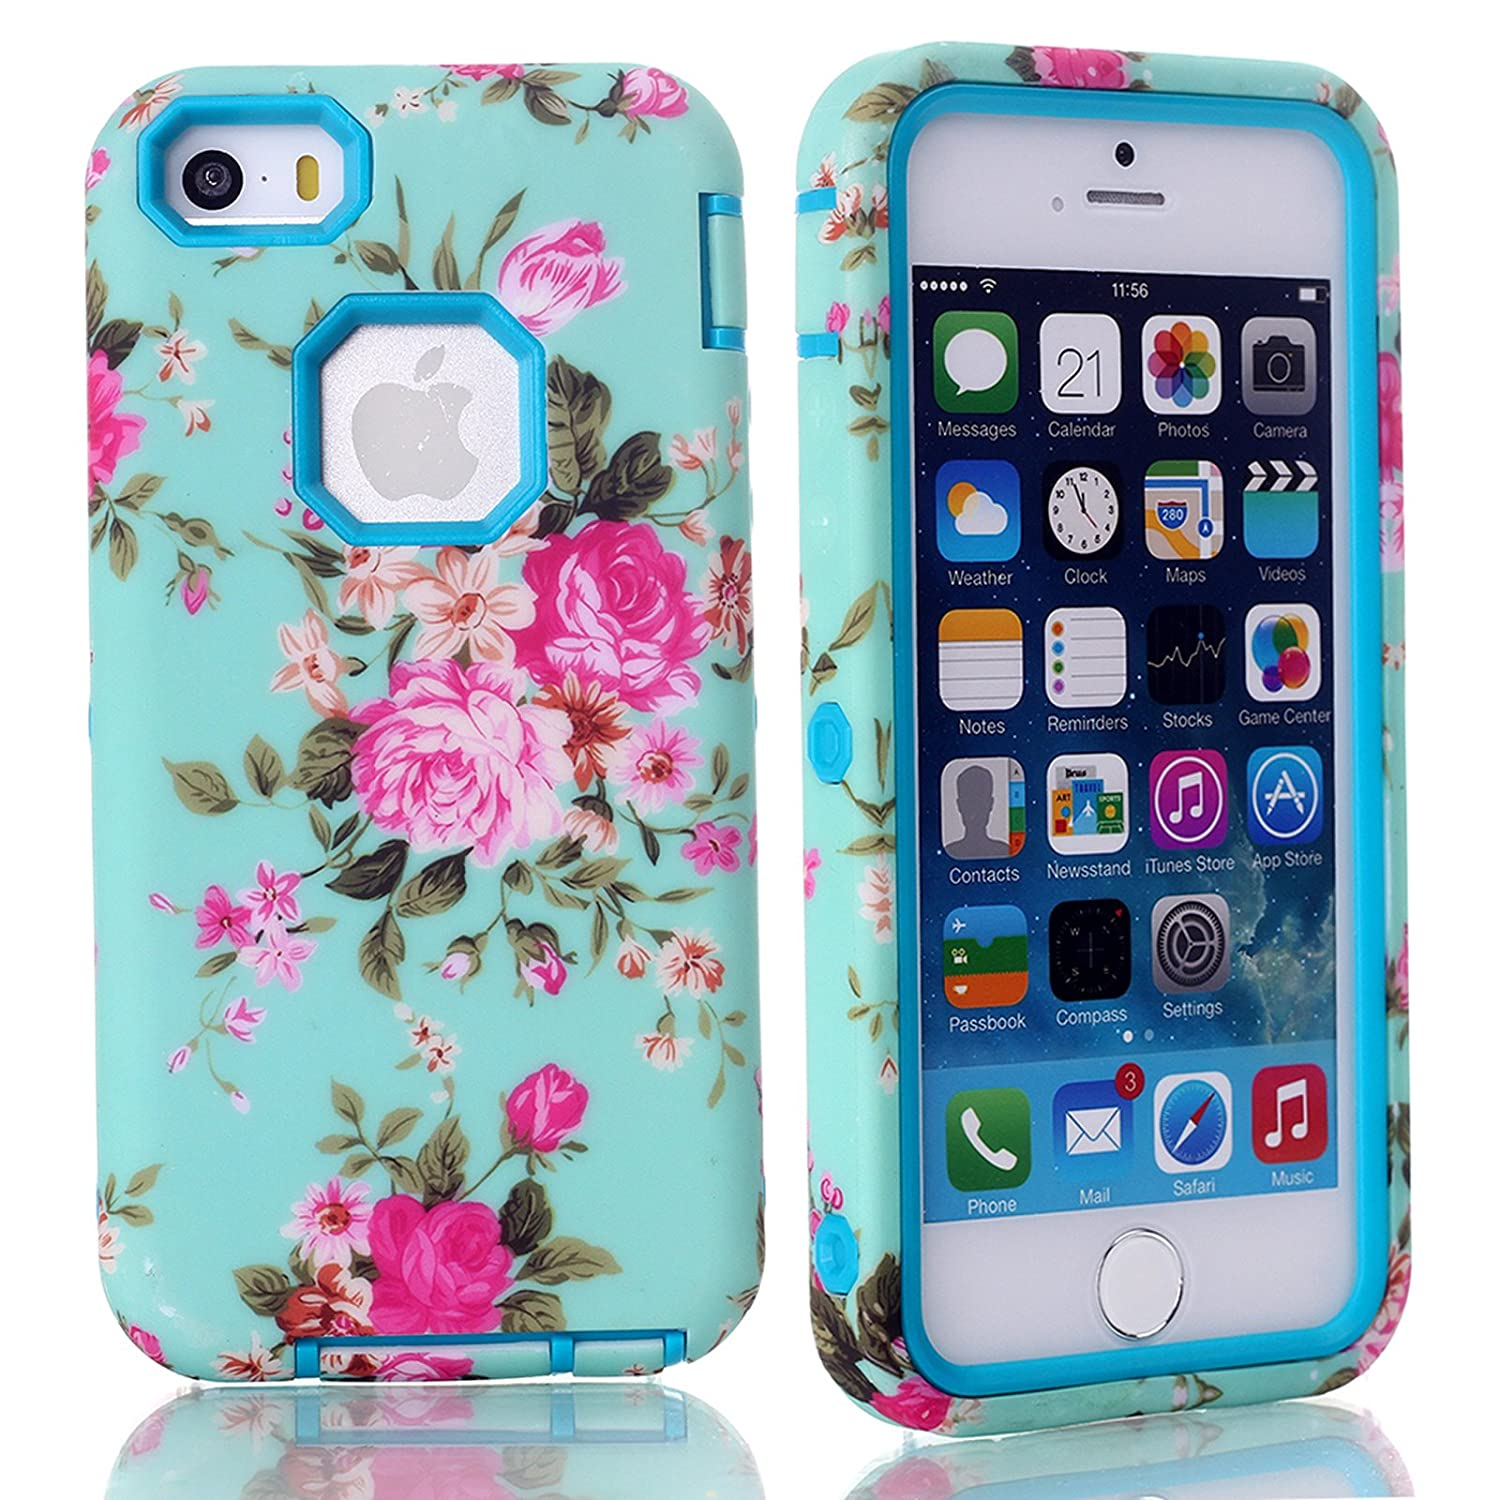 iPhone SE Case, Firefish (Combo Armor) Hard PC Cover Soft Silicone (Peony Pattern) Hybrid Defender (Drop-Resistance) (Detachable) Case for Apple iPhone SE/5/5S( Not for 5C)+One stylus-Blue